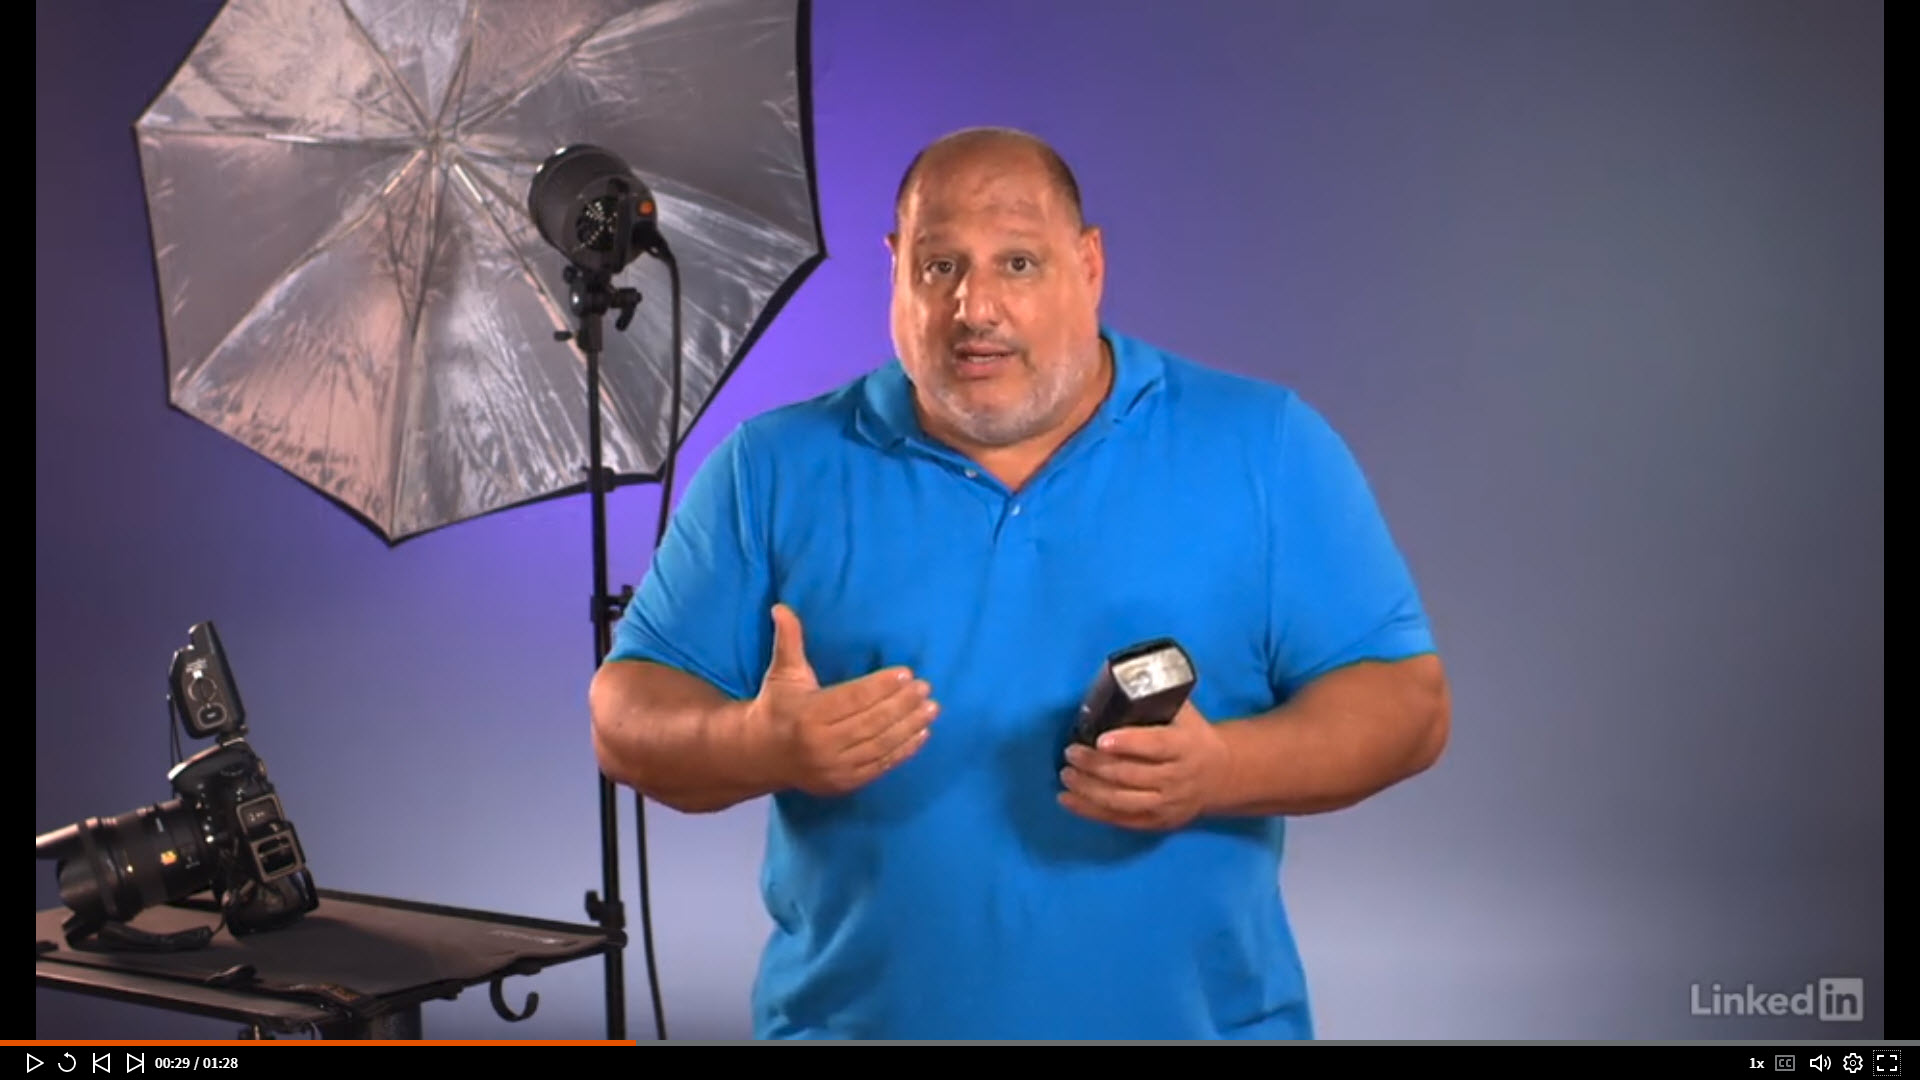 Featured-When to use studio strobe lighting